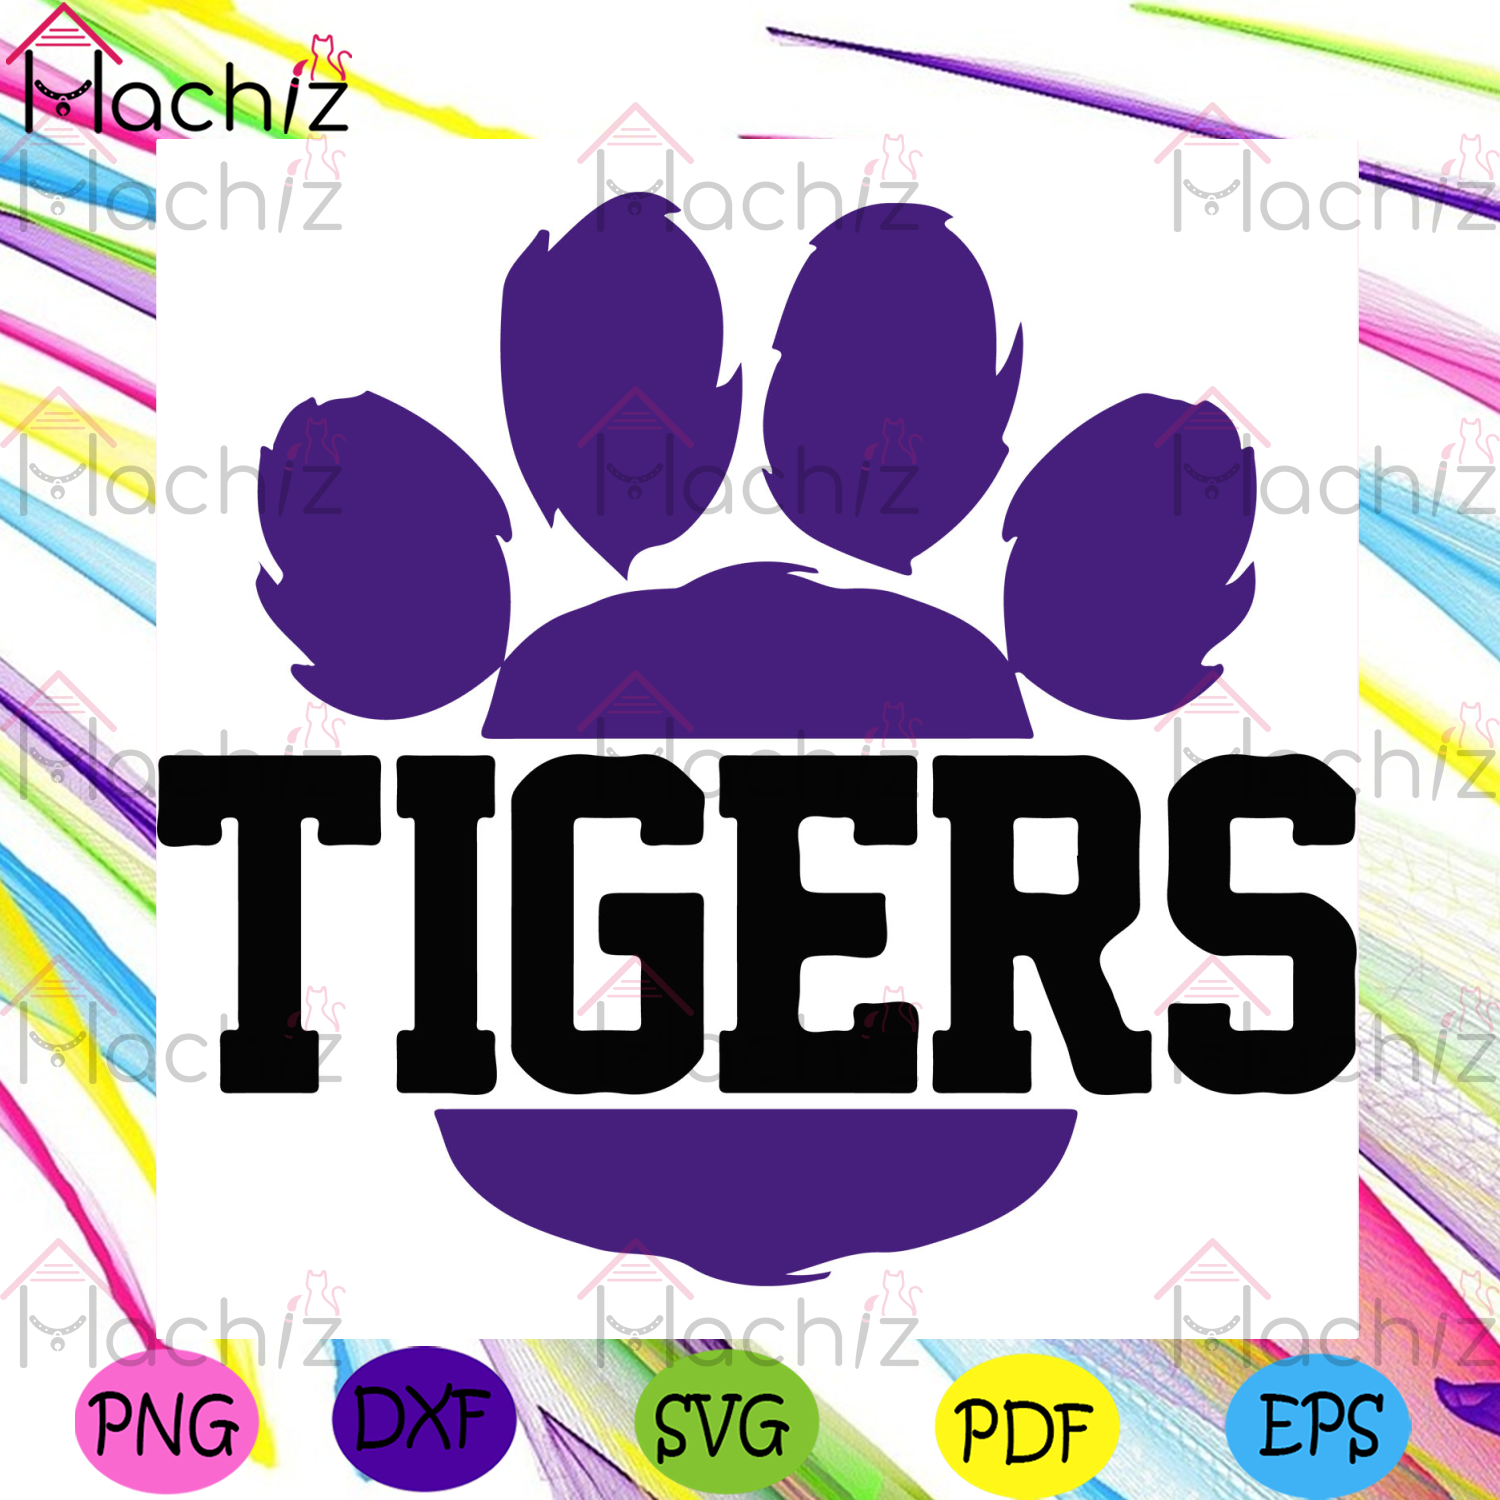 Split Paw Print SVG, Sport Svg, Tiger Paw SVG, Split Letter SVG, Tigers Clip Art, LSU Tigers Svg, LSU Tigers Football Svg, Football Team Svg, Football Fans Svg, Tigers Fans Svg, NCAA Svg, NCAA Gift Svg, NCAA Fans Svg,